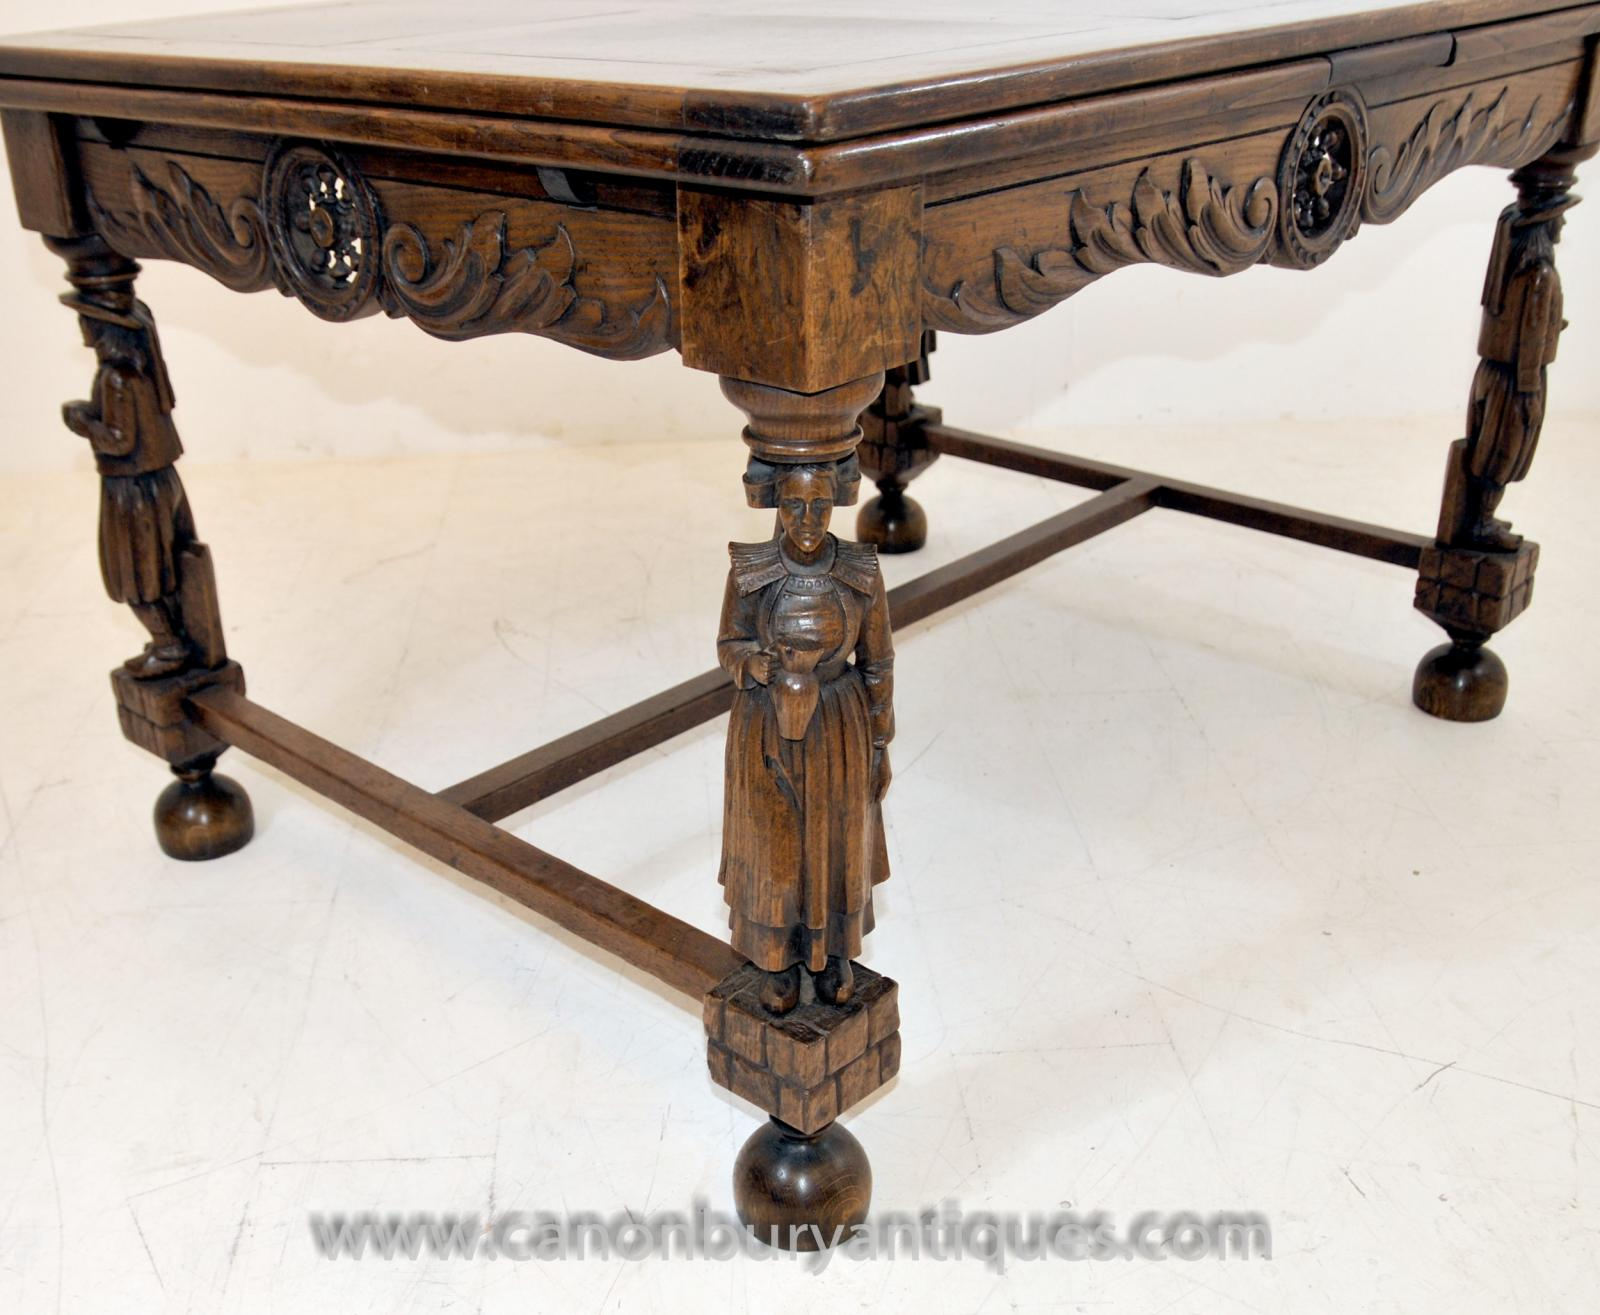 Antique french provincial extending oak dining table carved legs refectory table ebay - Antique french dining tables ...